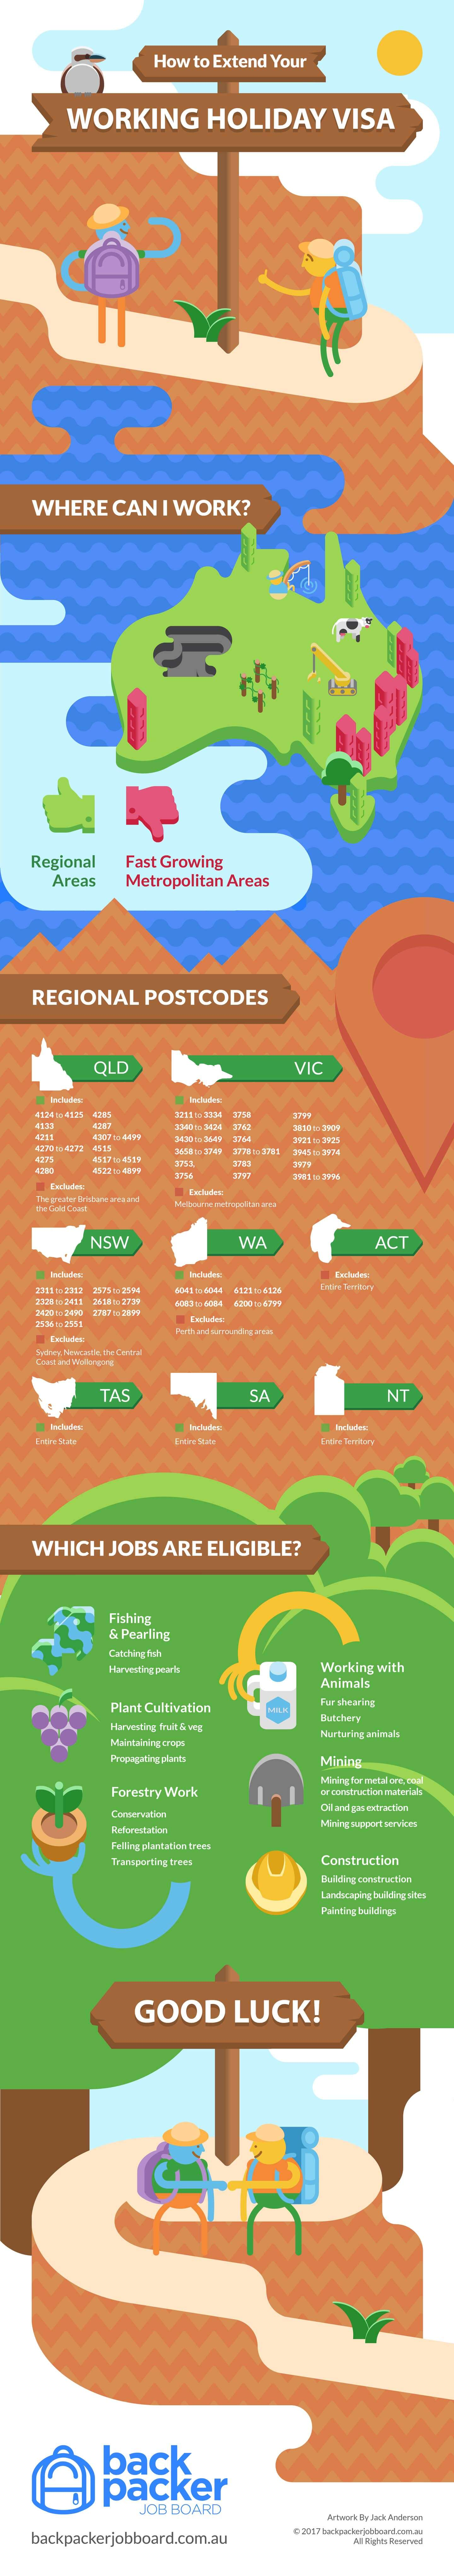 Infographic: Second Year Visa process